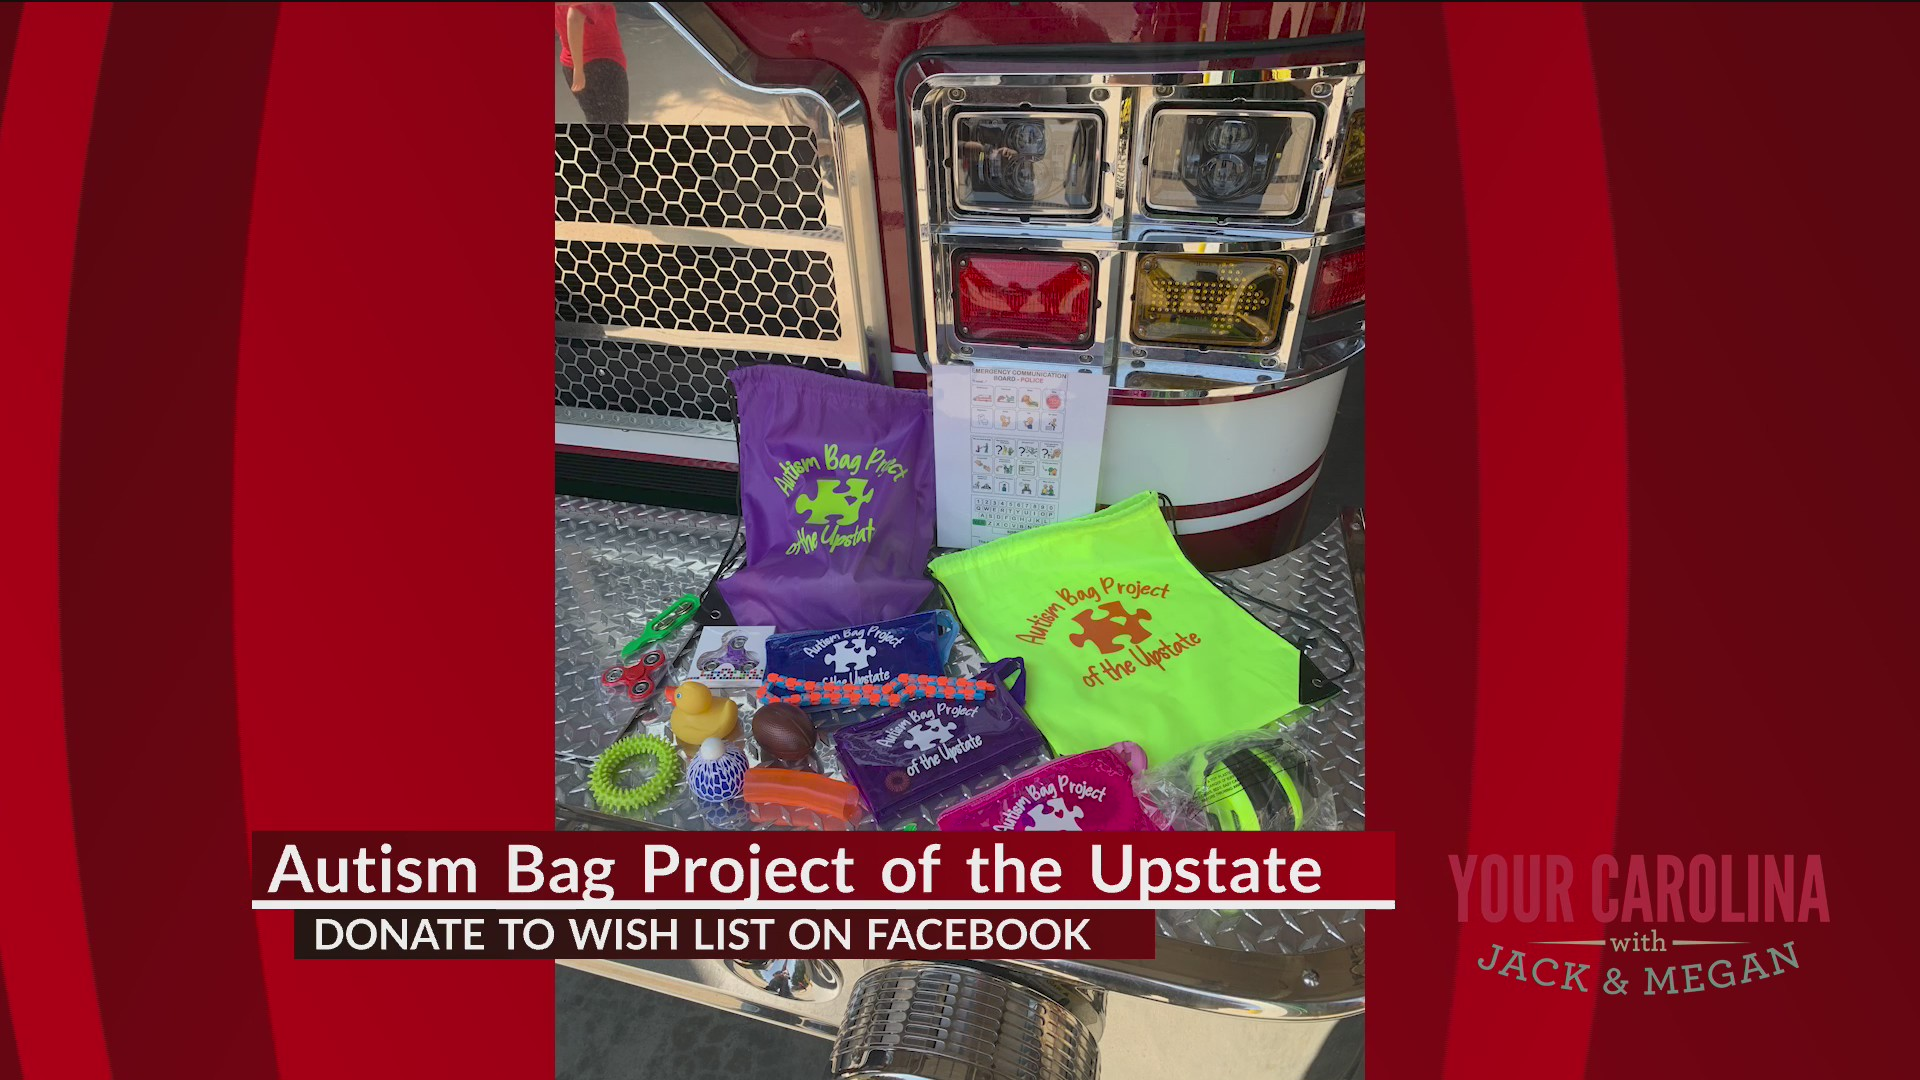 Autism Bag Project of the Upstate